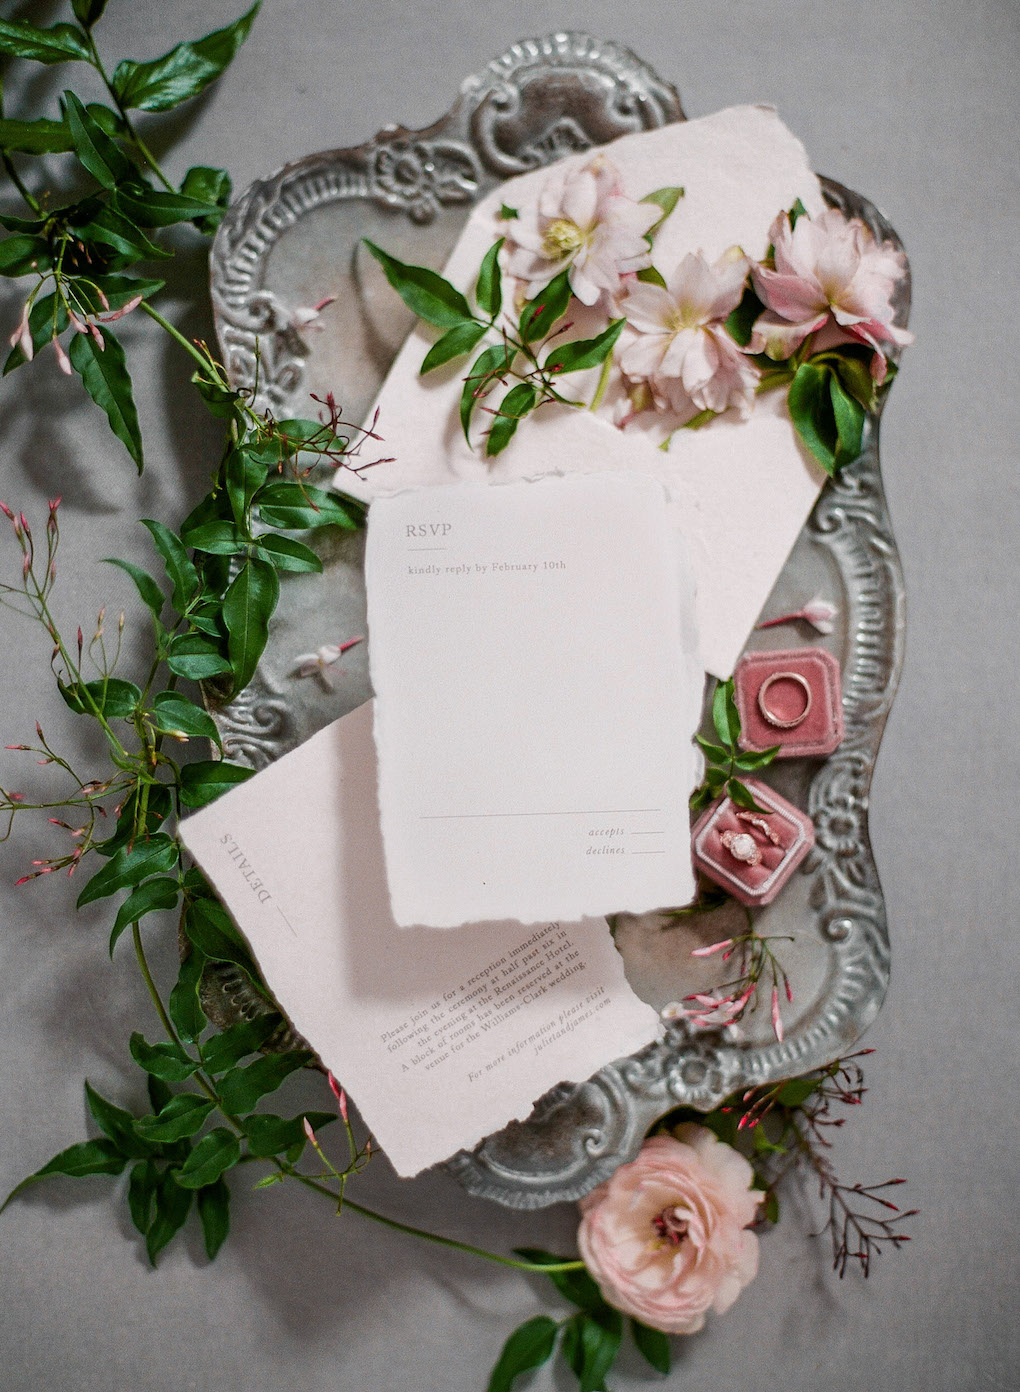 Wedding invitation suite: Soft and Subtle Palettes of Spring Blossoms | Editorial Shoot at The Renaissance Pittsburgh by Exhale Events. See more inspiration at exhale-events.com!